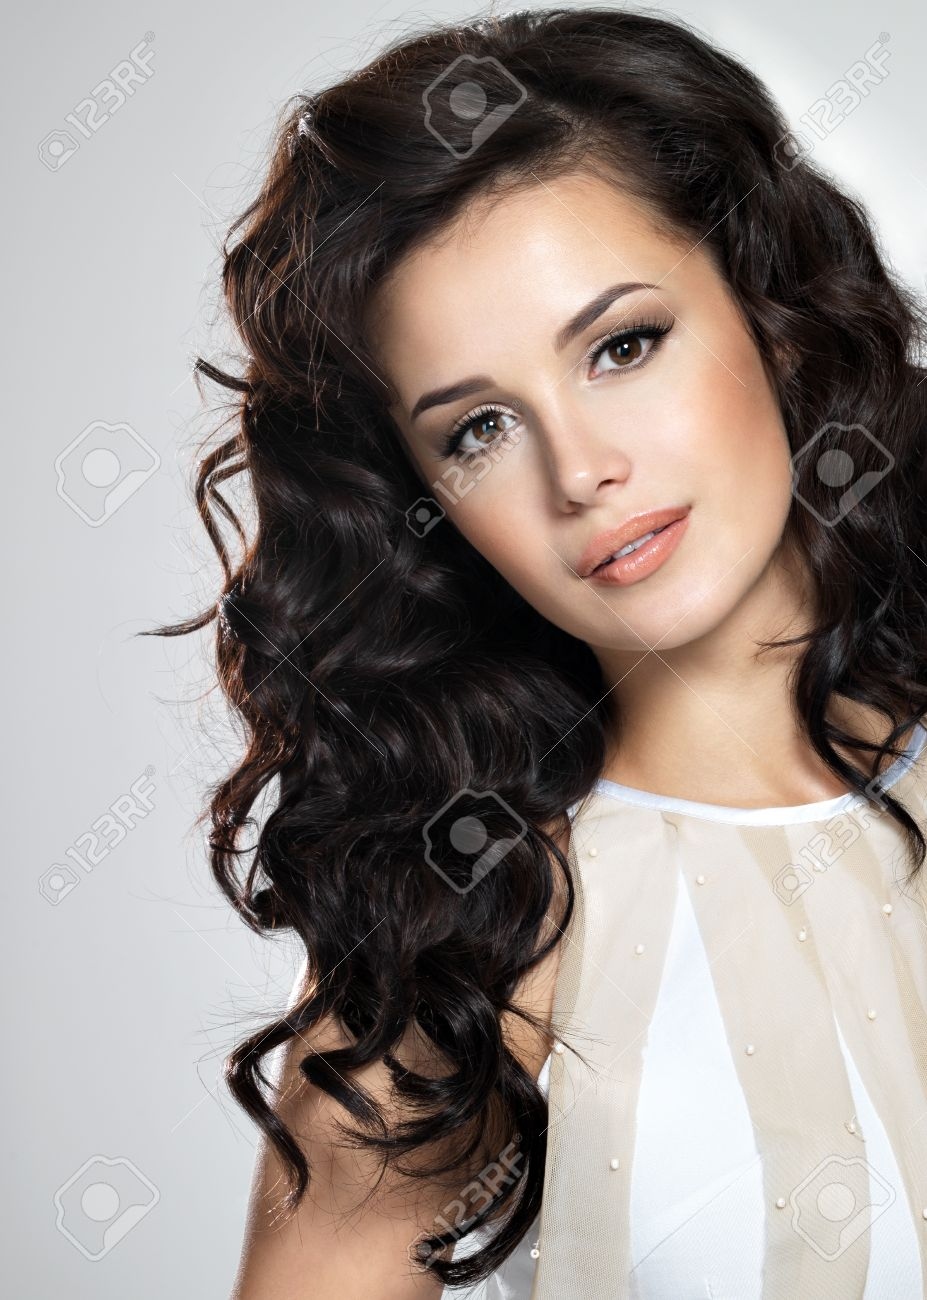 Beautiful brunette model with long curly brown hair. Pretty model poses at studio. Stock Photo - 16444316